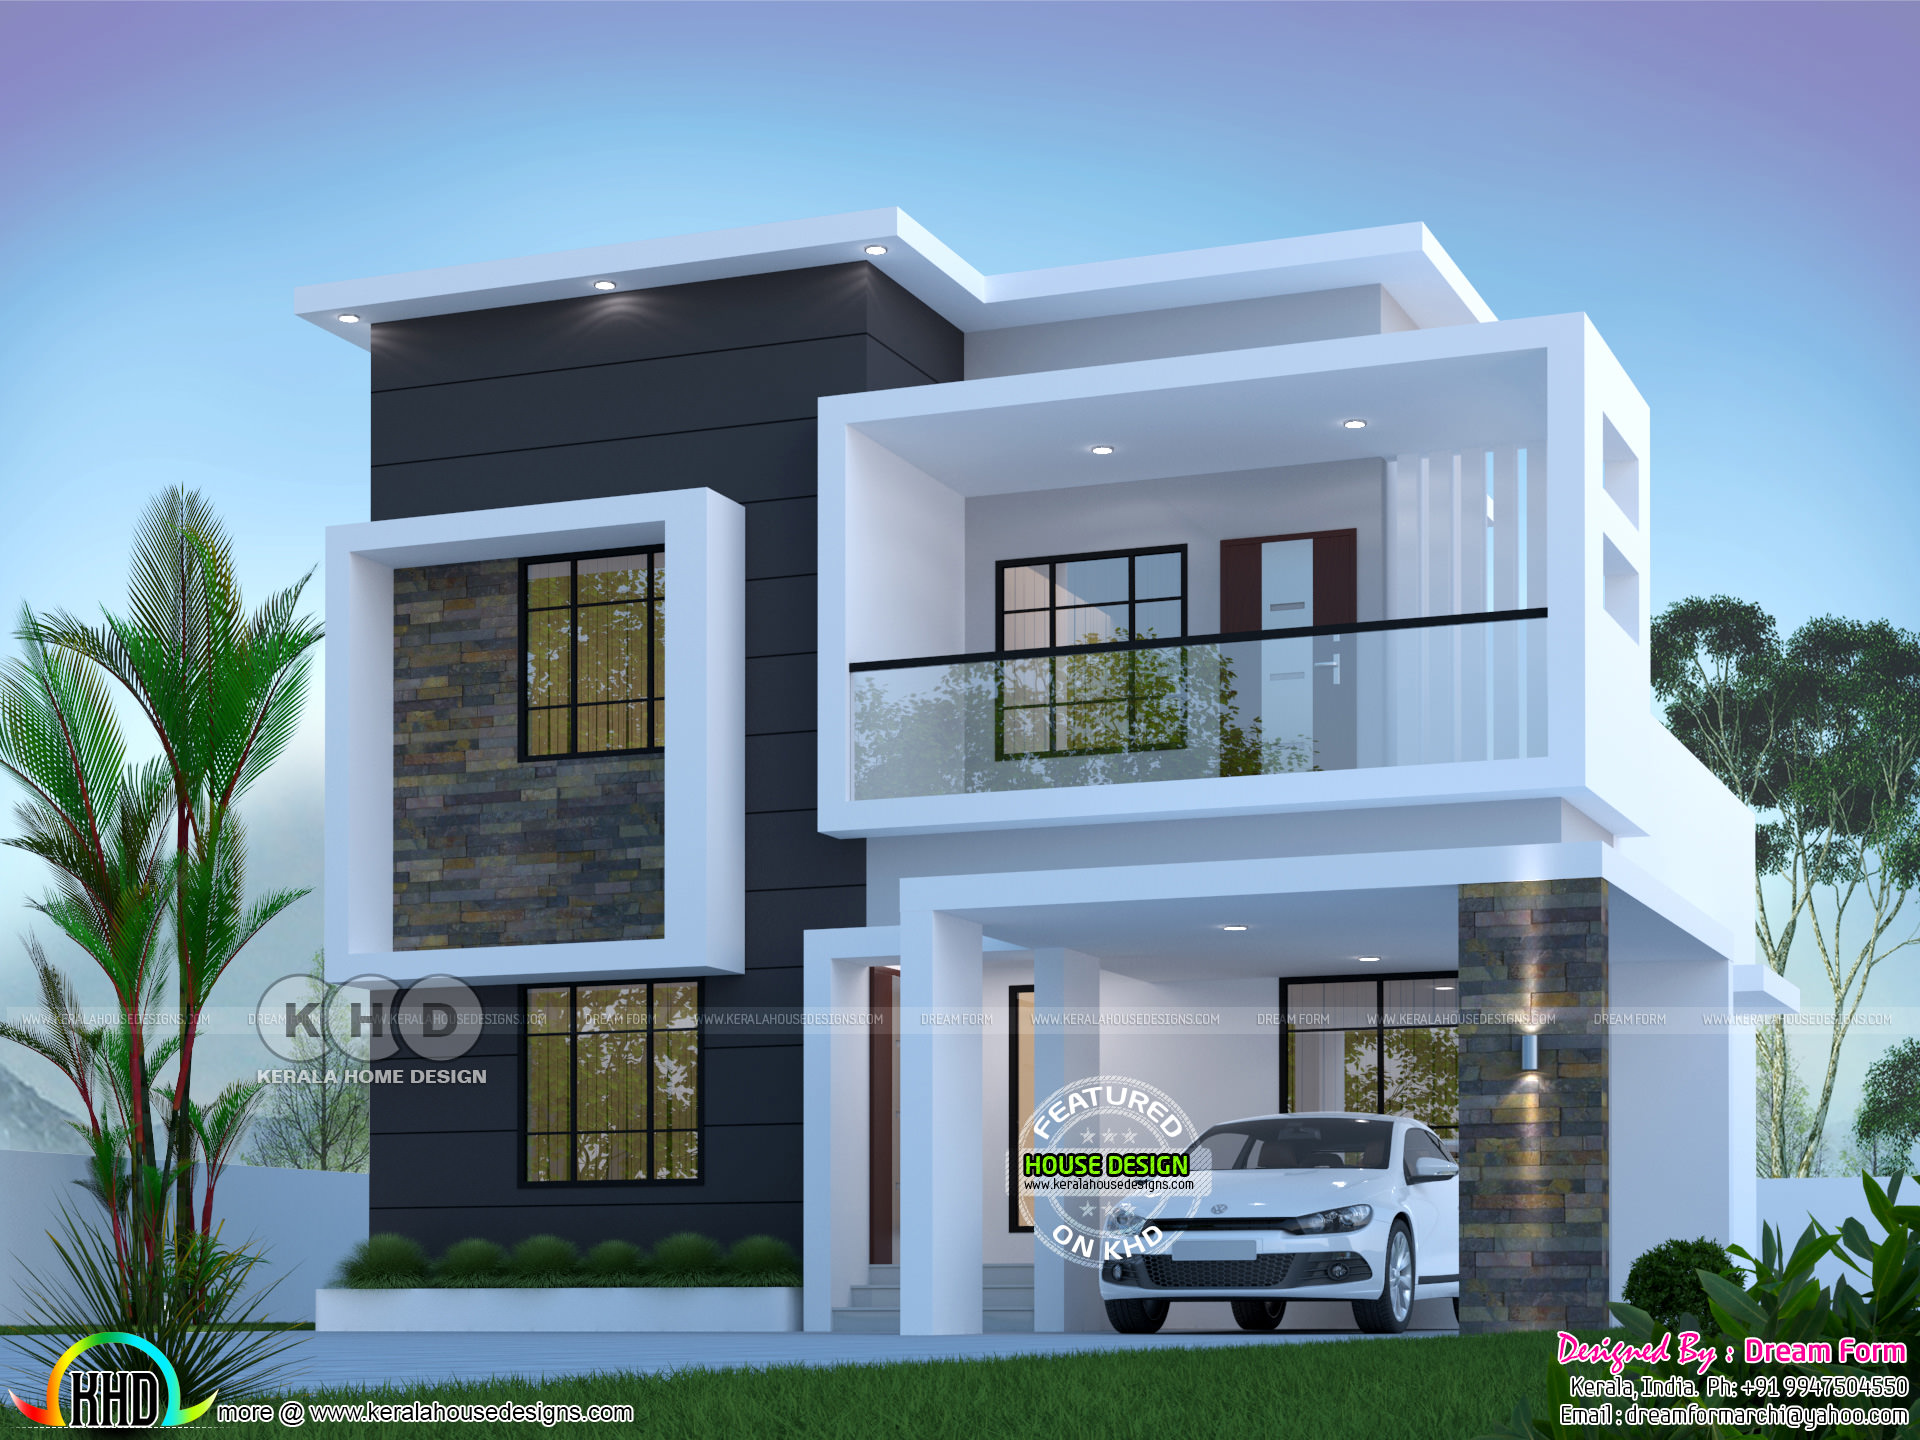 beautiful residence - 23+ Small Modern House Plans Under 2000 Sq Ft  PNG